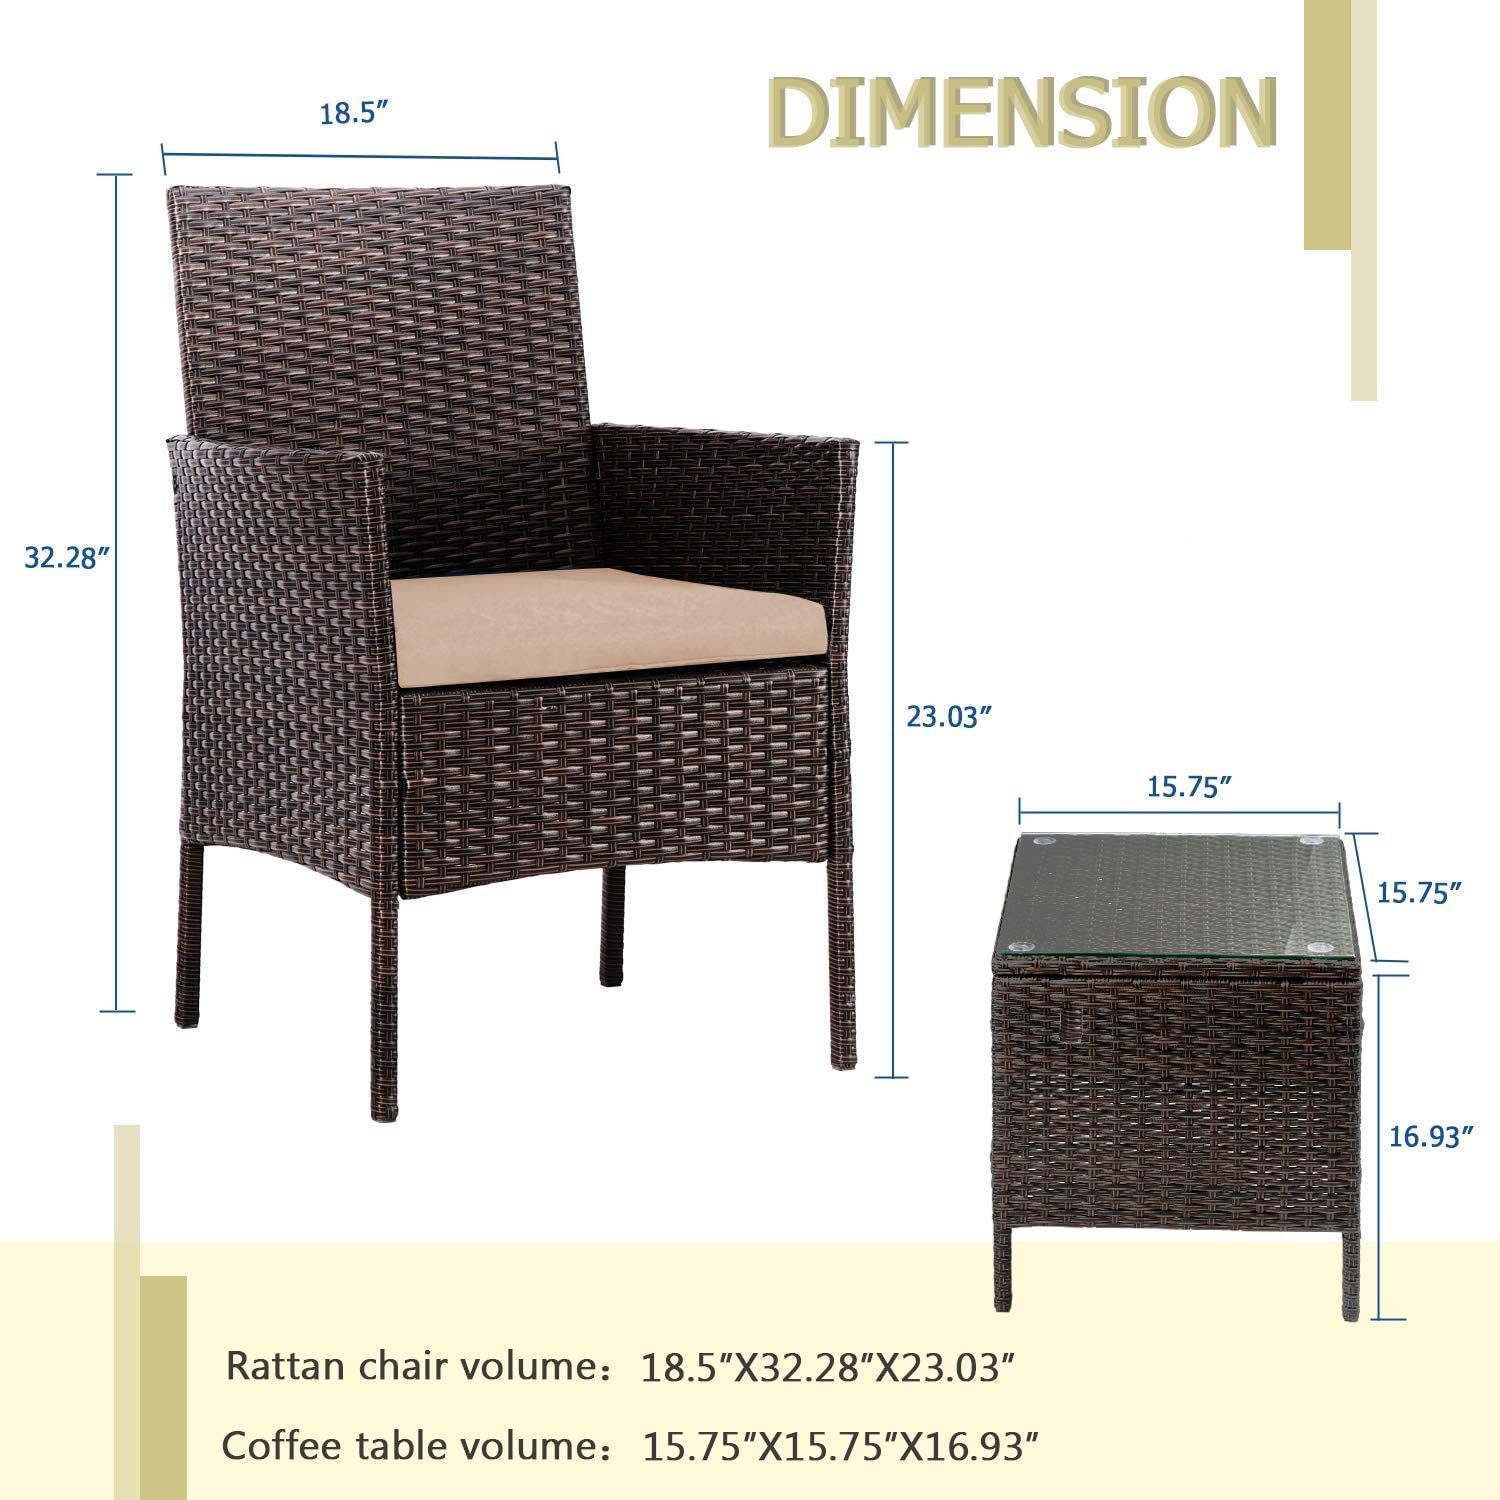 Brown Cushion Patiomore 3 Pieces Outdoor Bistro Set Cushioned Furniture Set PE Brown Wicker Patio Chairs with Coffee Table